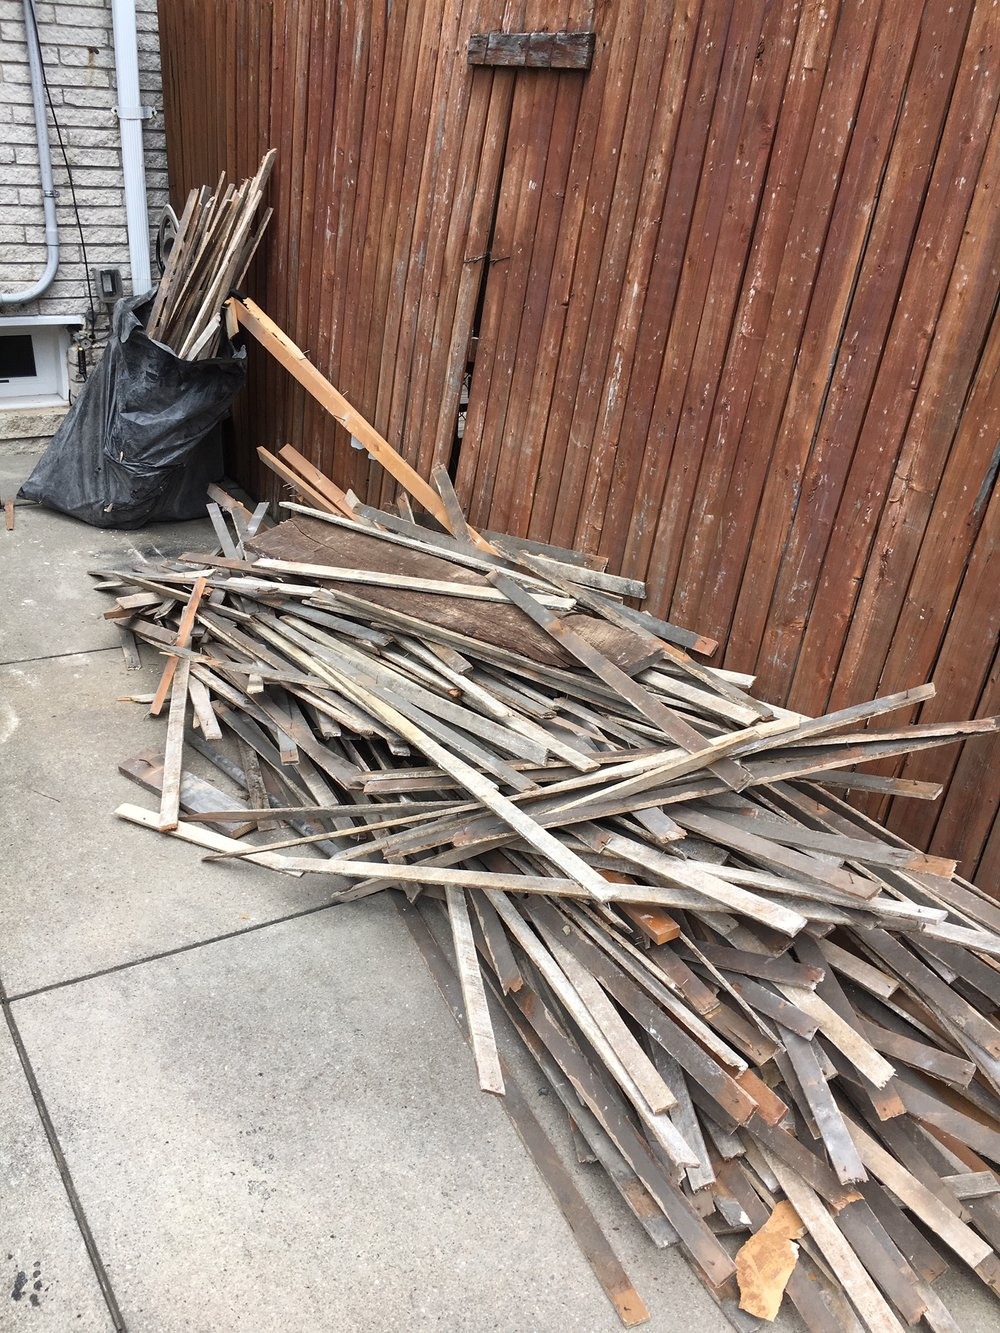 Approx 1/4 of the wood slats we removed.